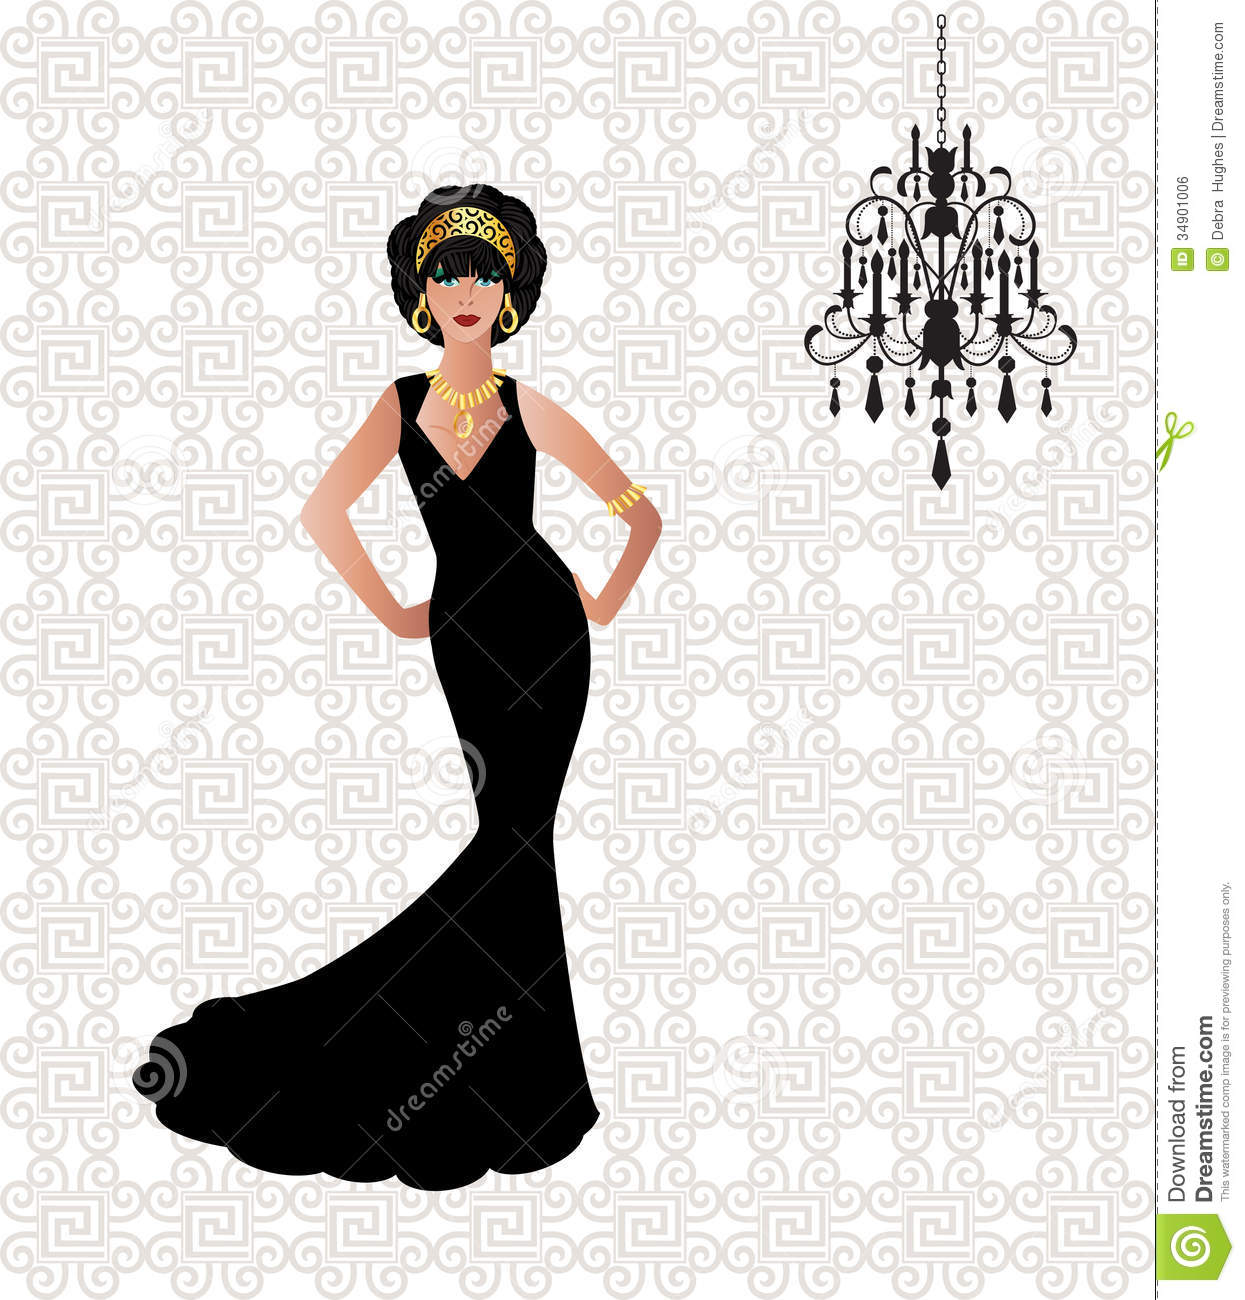 Glitz and glam clipart picture freeuse library Glamour Clip Art Free | Clipart Panda - Free Clipart Images picture freeuse library